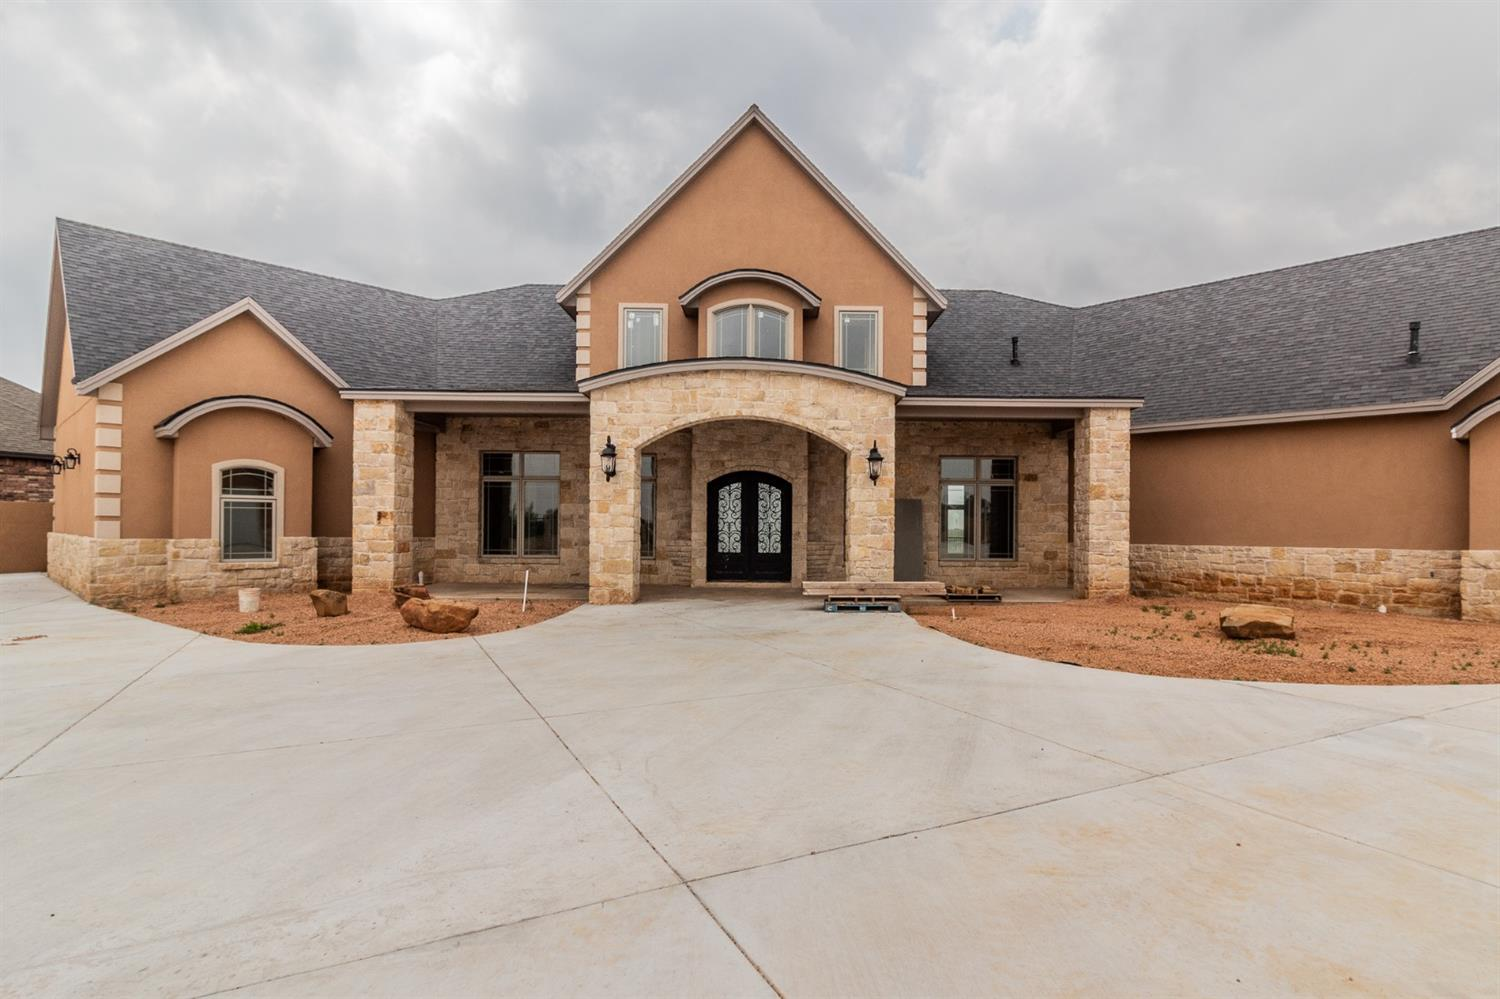 308 Palomino Drive, one of homes for sale in Lubbock